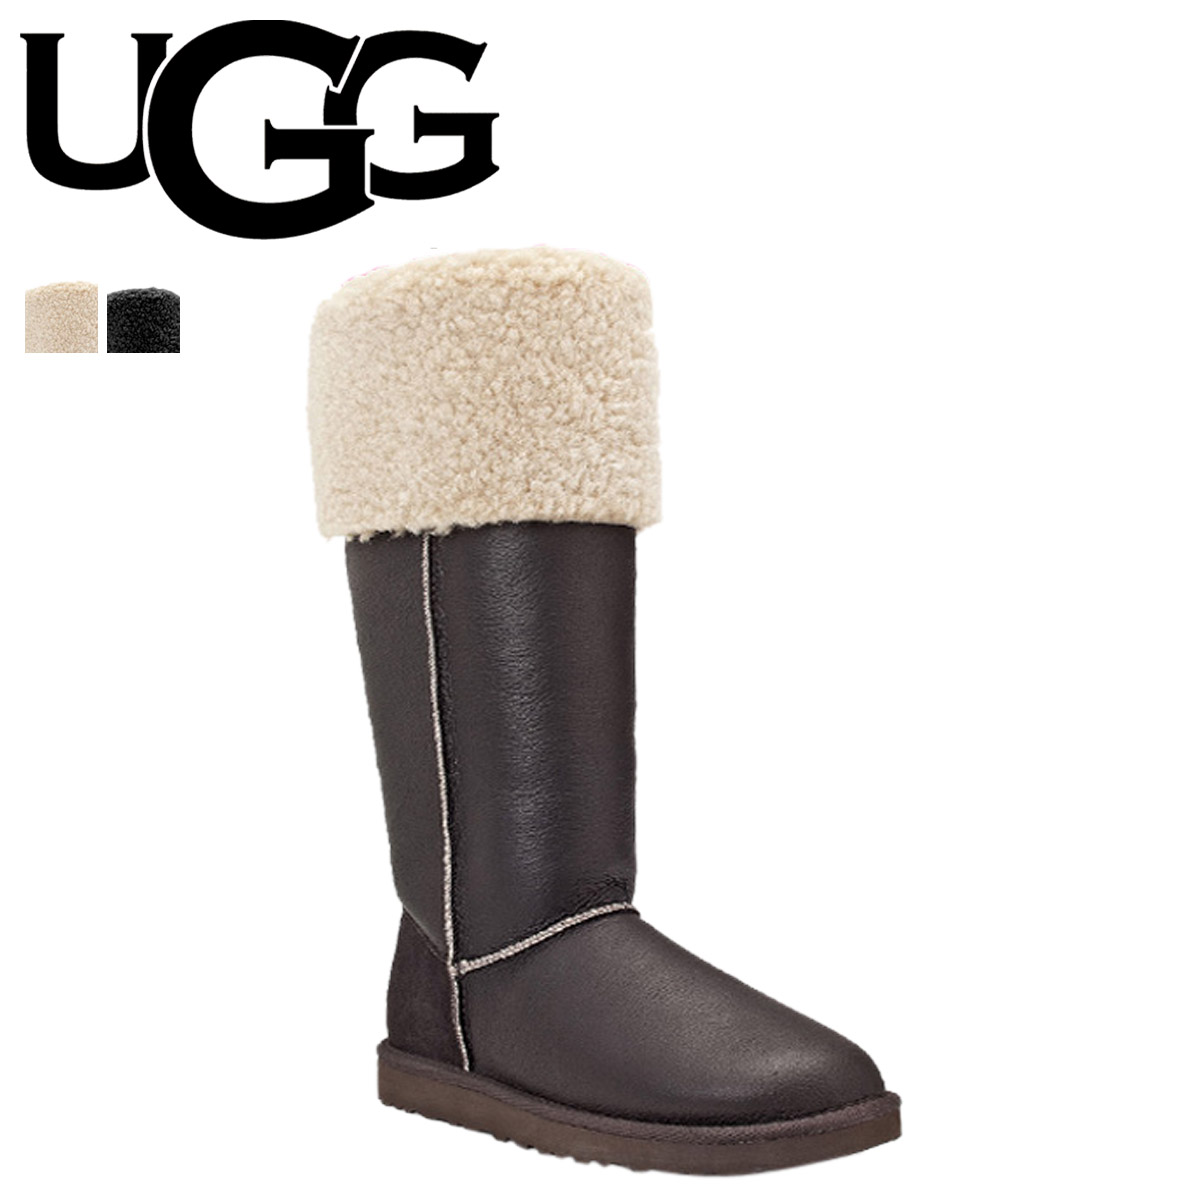 b05bcee3676 [SOLD OUT] UGG UGG Womens over the knee Bailey button Sheepskin boots 2  color 3175 WOMENS OVER THE KNEE BAILEY BUTTON Womens Sheepskin [genuine]